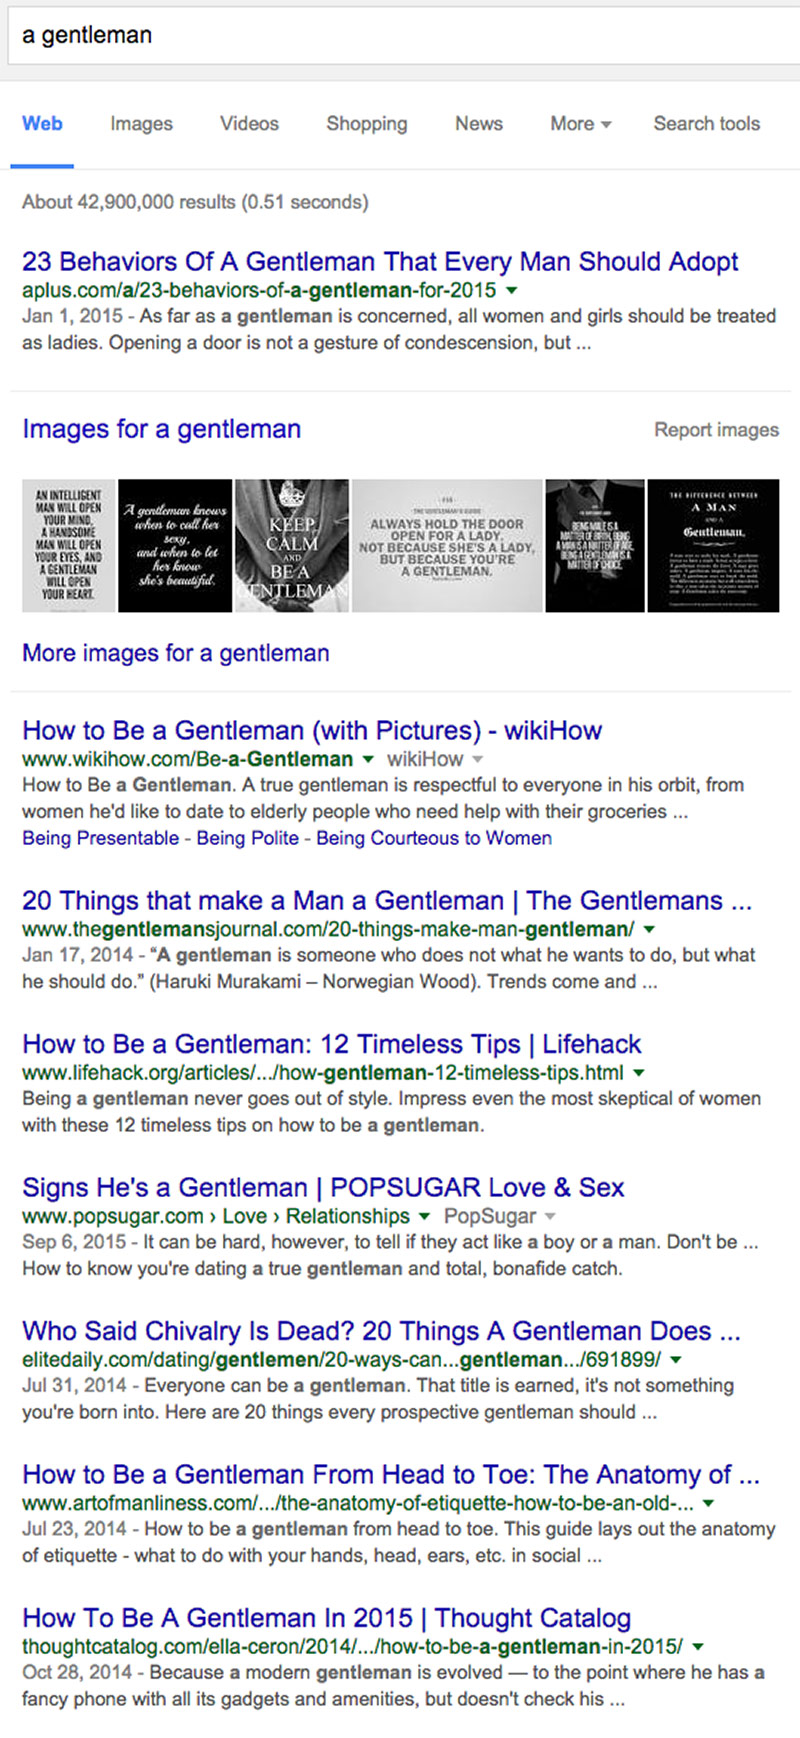 gent image search